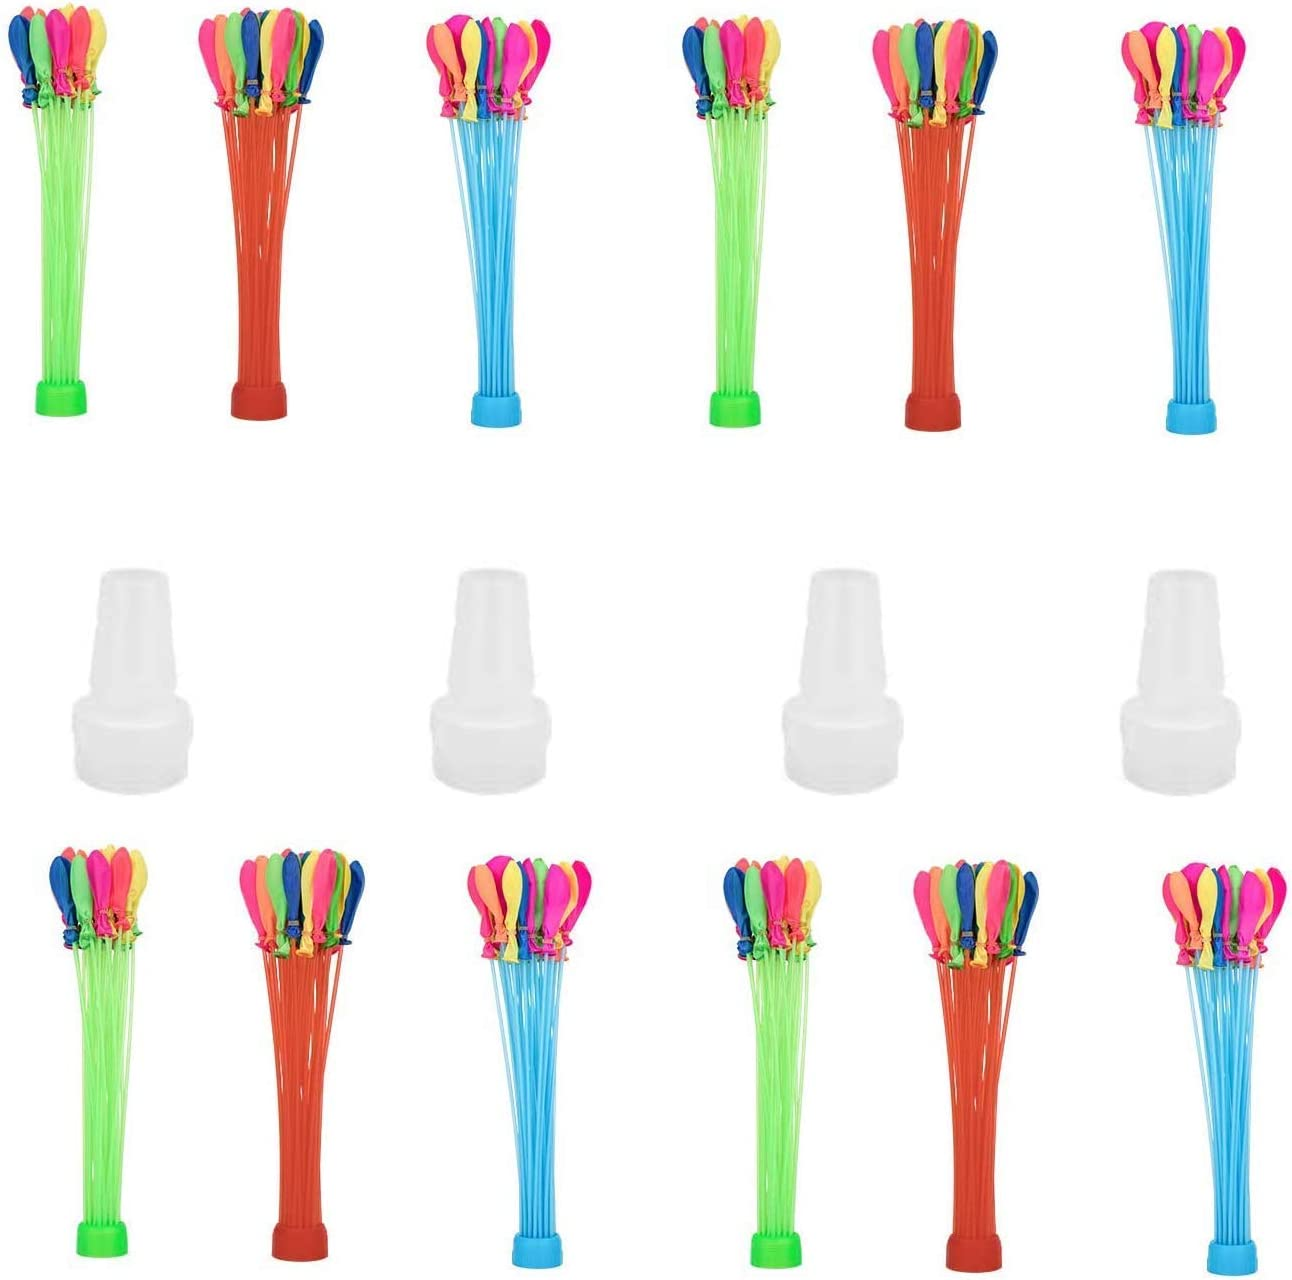 Water Balloons Quick Fill Self Sealing for Kids and Adults Fun Party Water Balloon 444 Water Balloons Multicolor Bunch of Balloons Fill in 60 Seconds